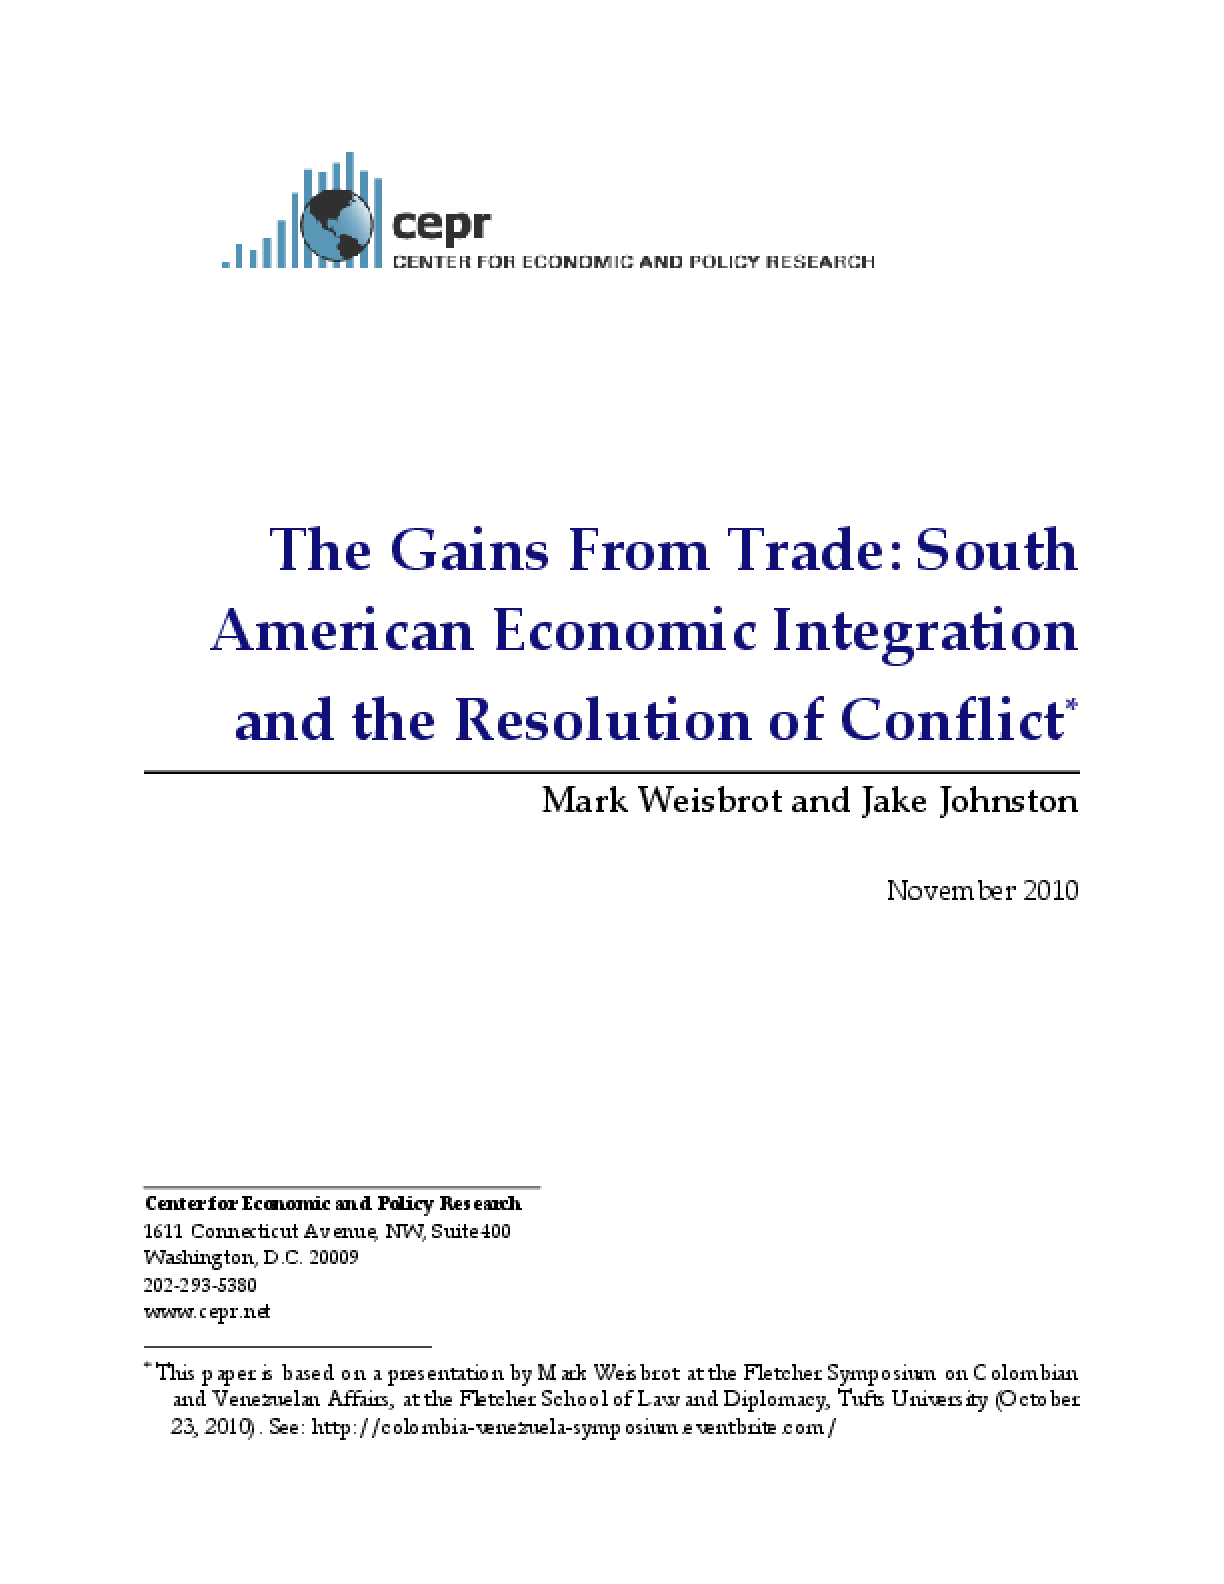 The Gains From Trade: South American Economic Integration and the Resolution of Conflict